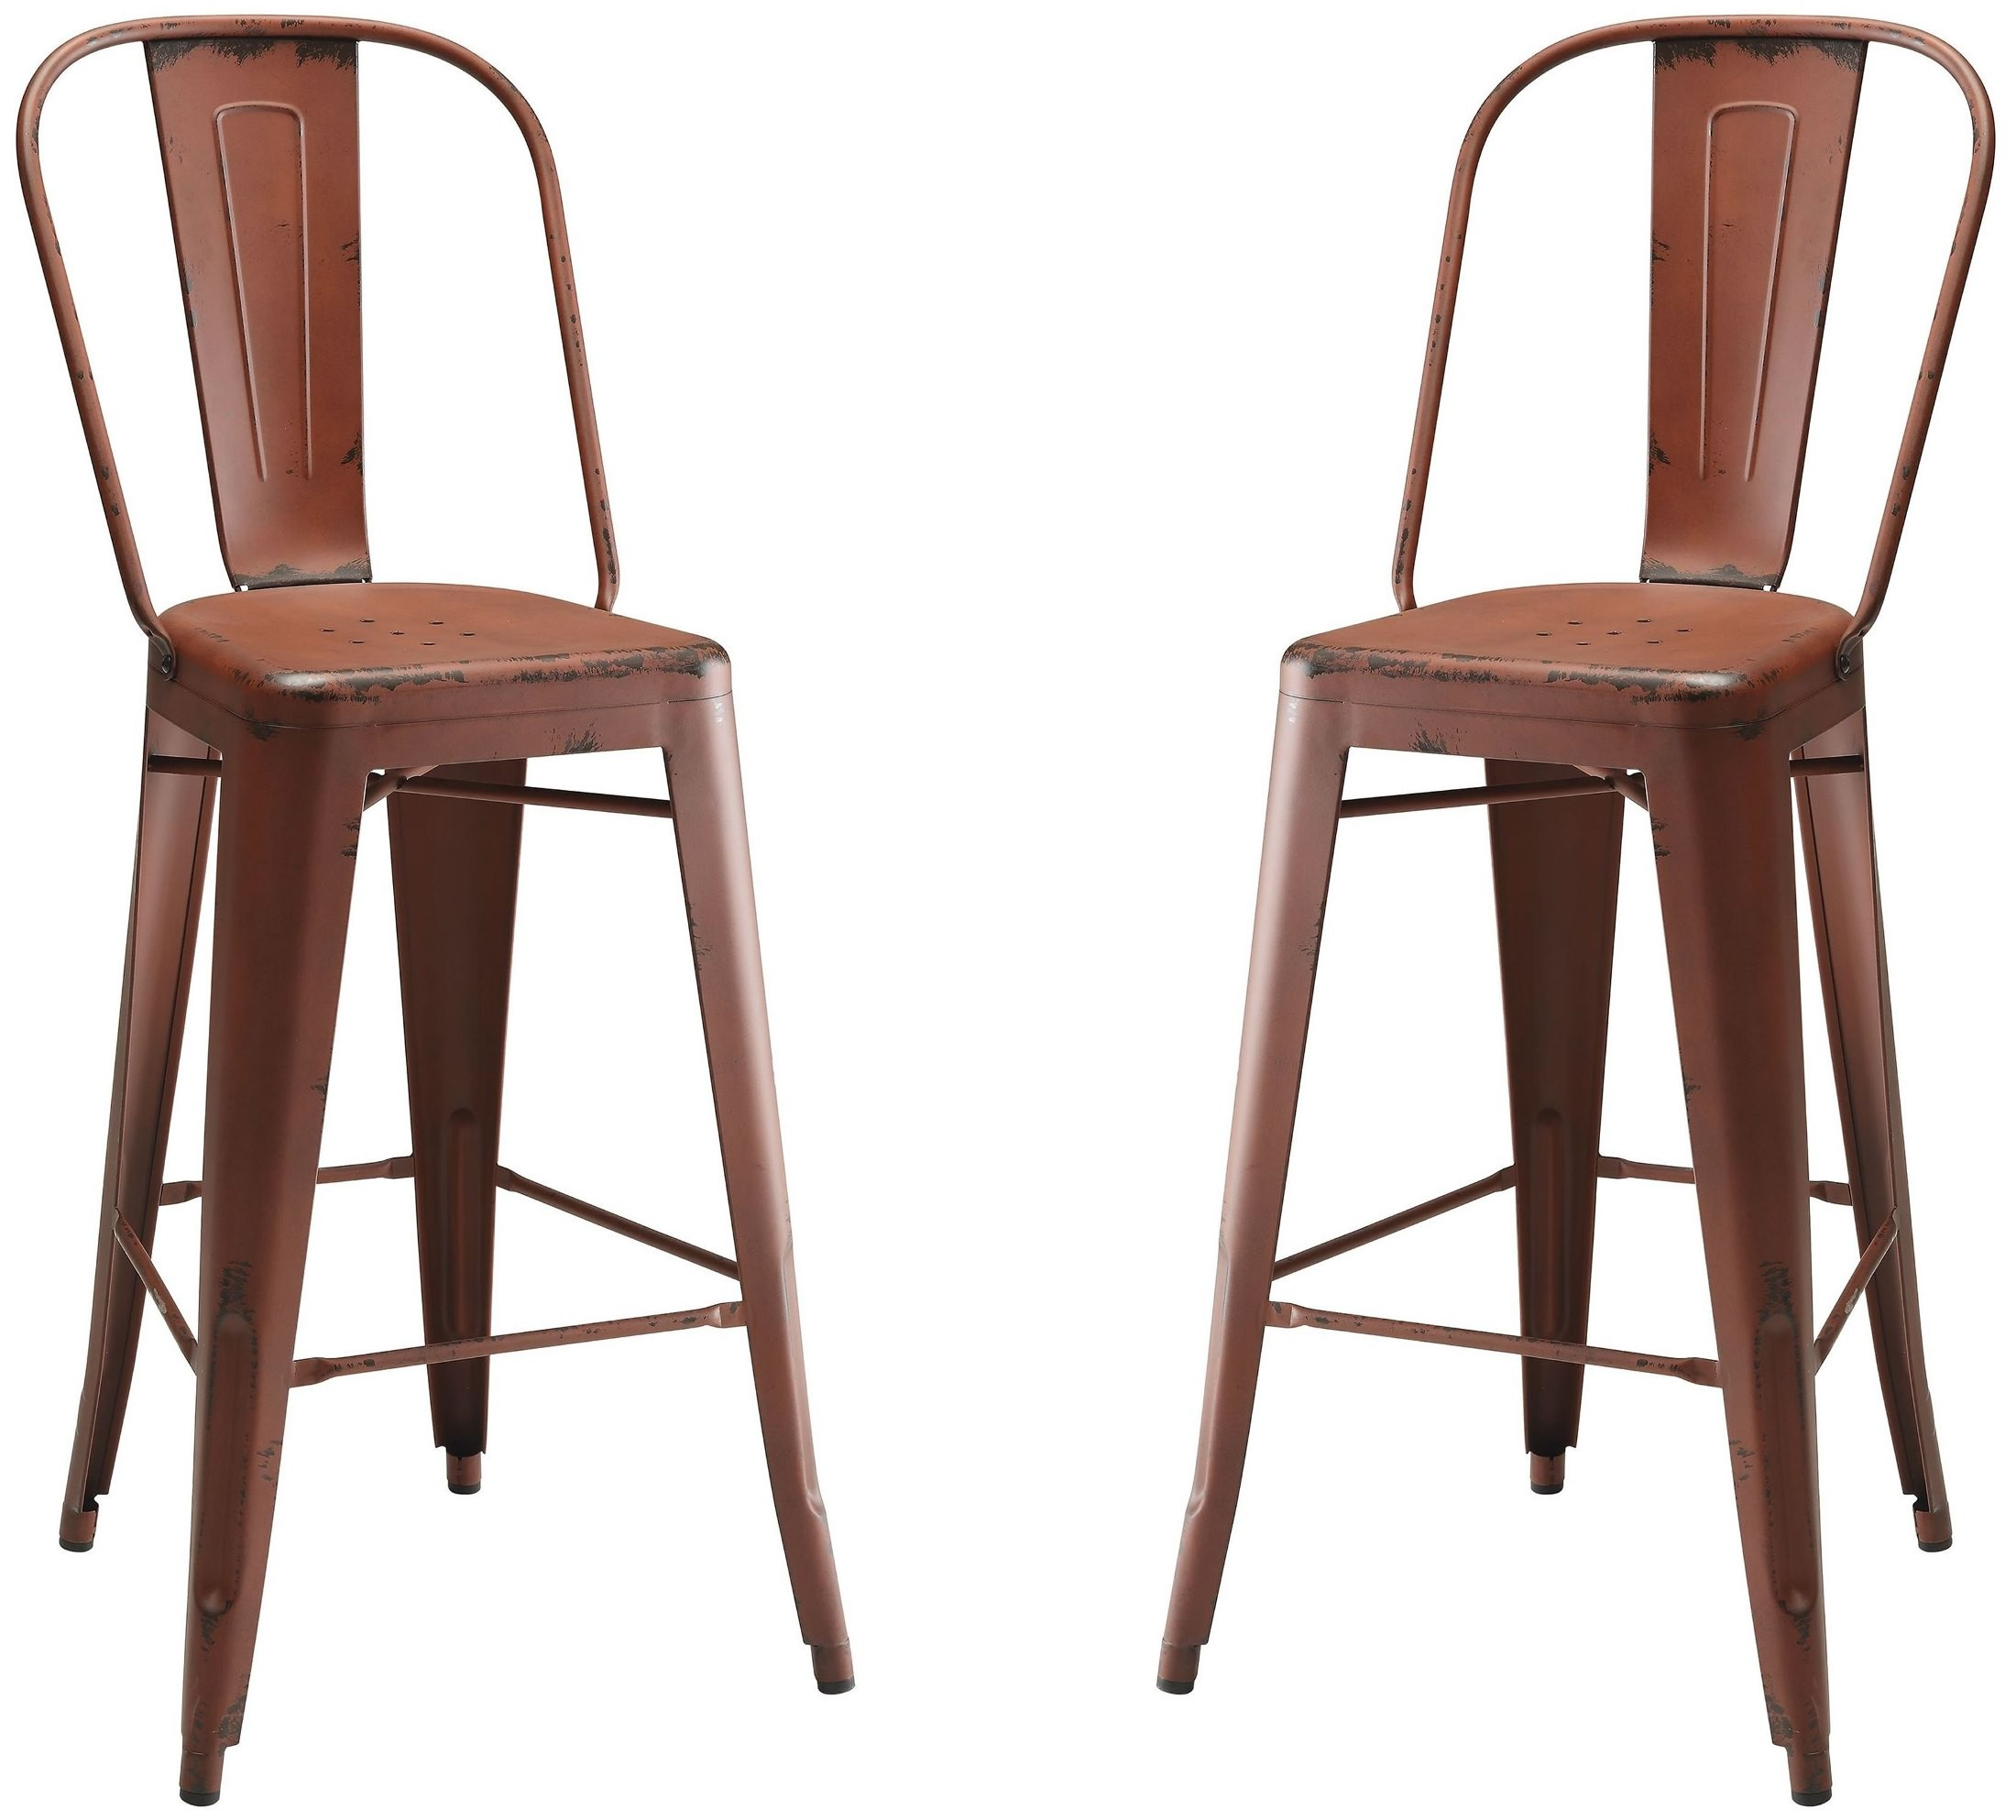 Red Metal Bar Stool Set Of 2 From Coaster Coleman Furniture